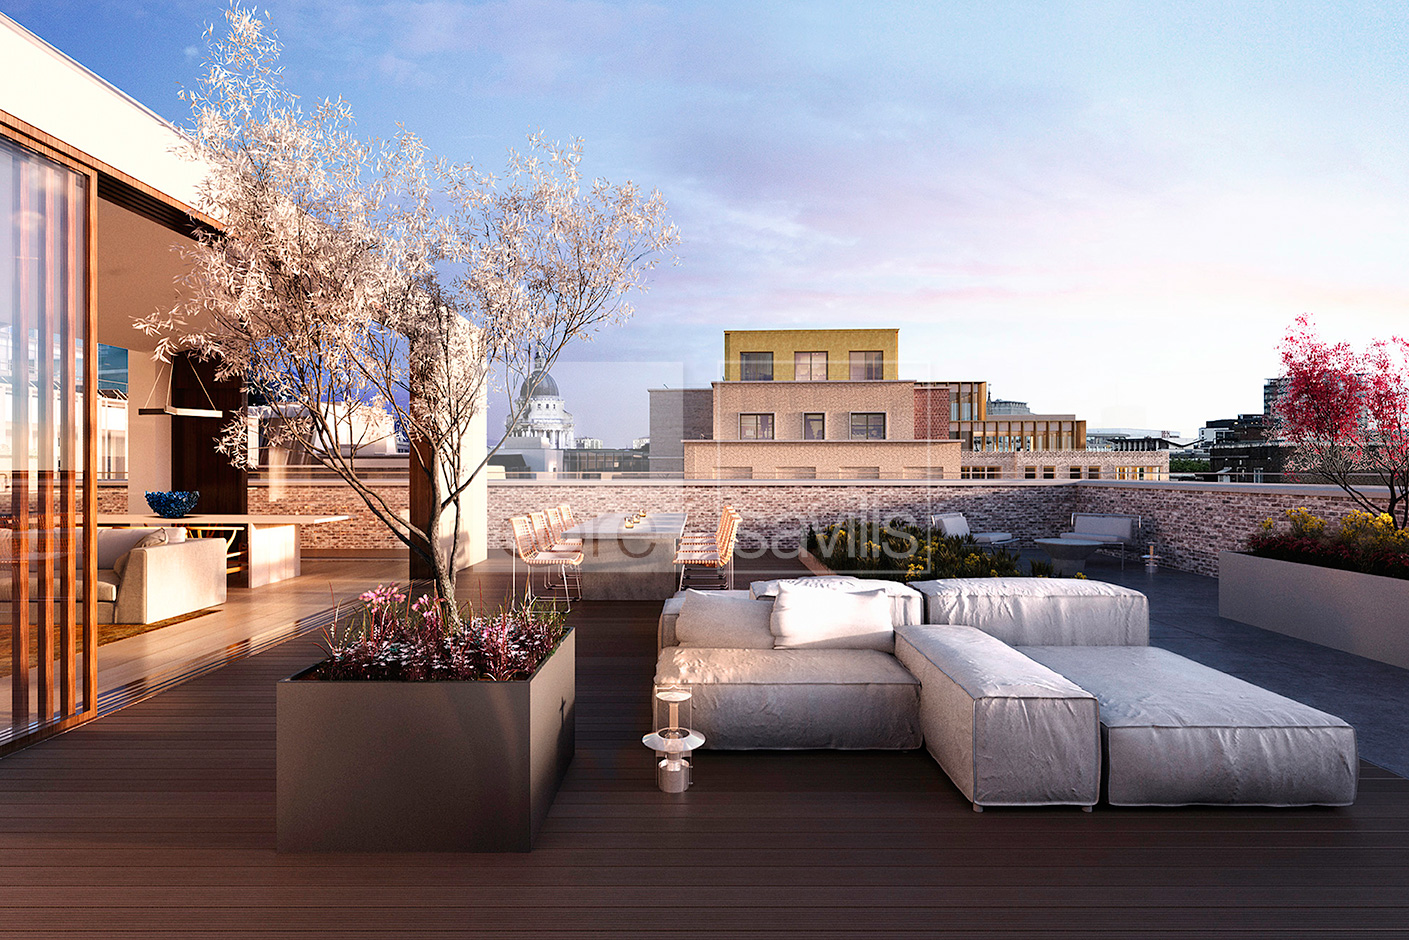 http://core-me.com/property-details-international.html?tag=Elegantly-Crafted-Residential-Development&Id=CO-S-1000